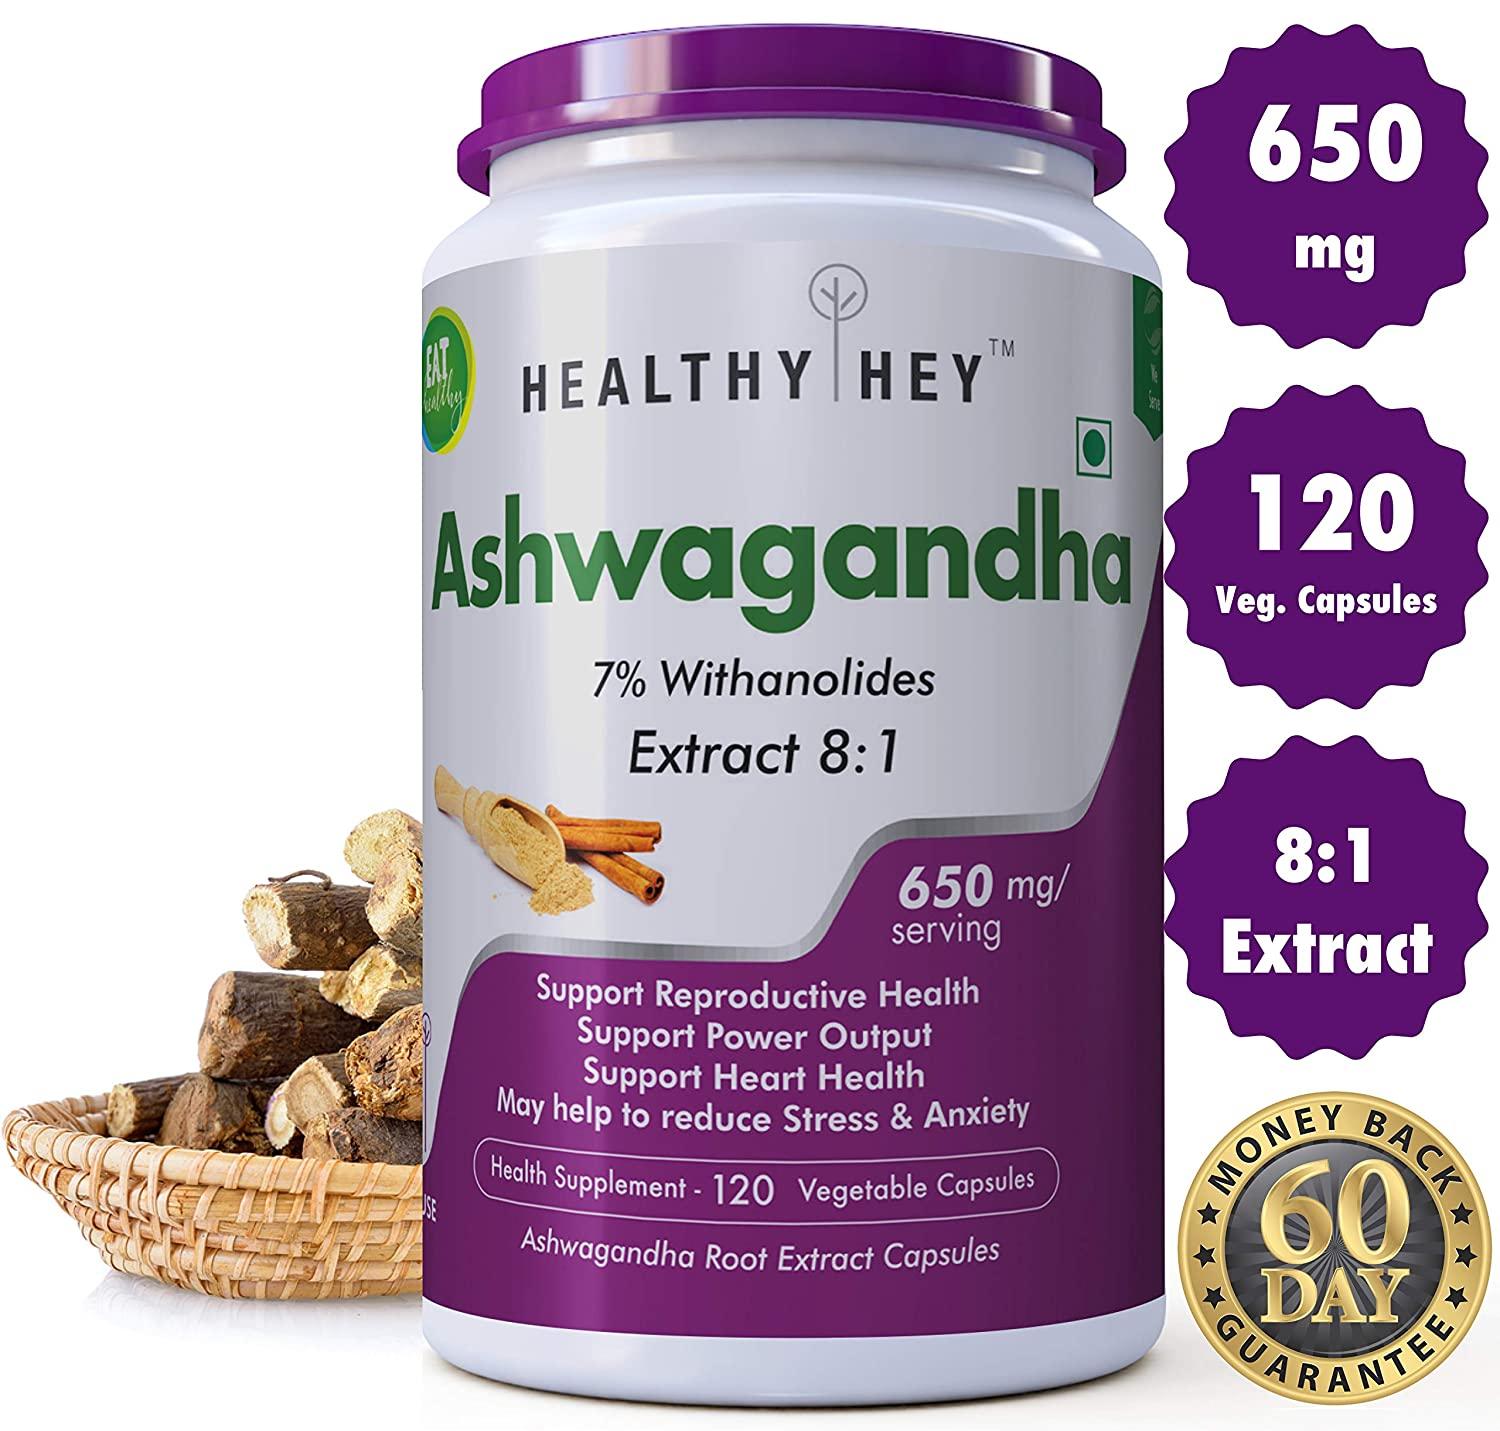 Buy Healthyhey Nutrition Ashwagandha Root Extract Capsules